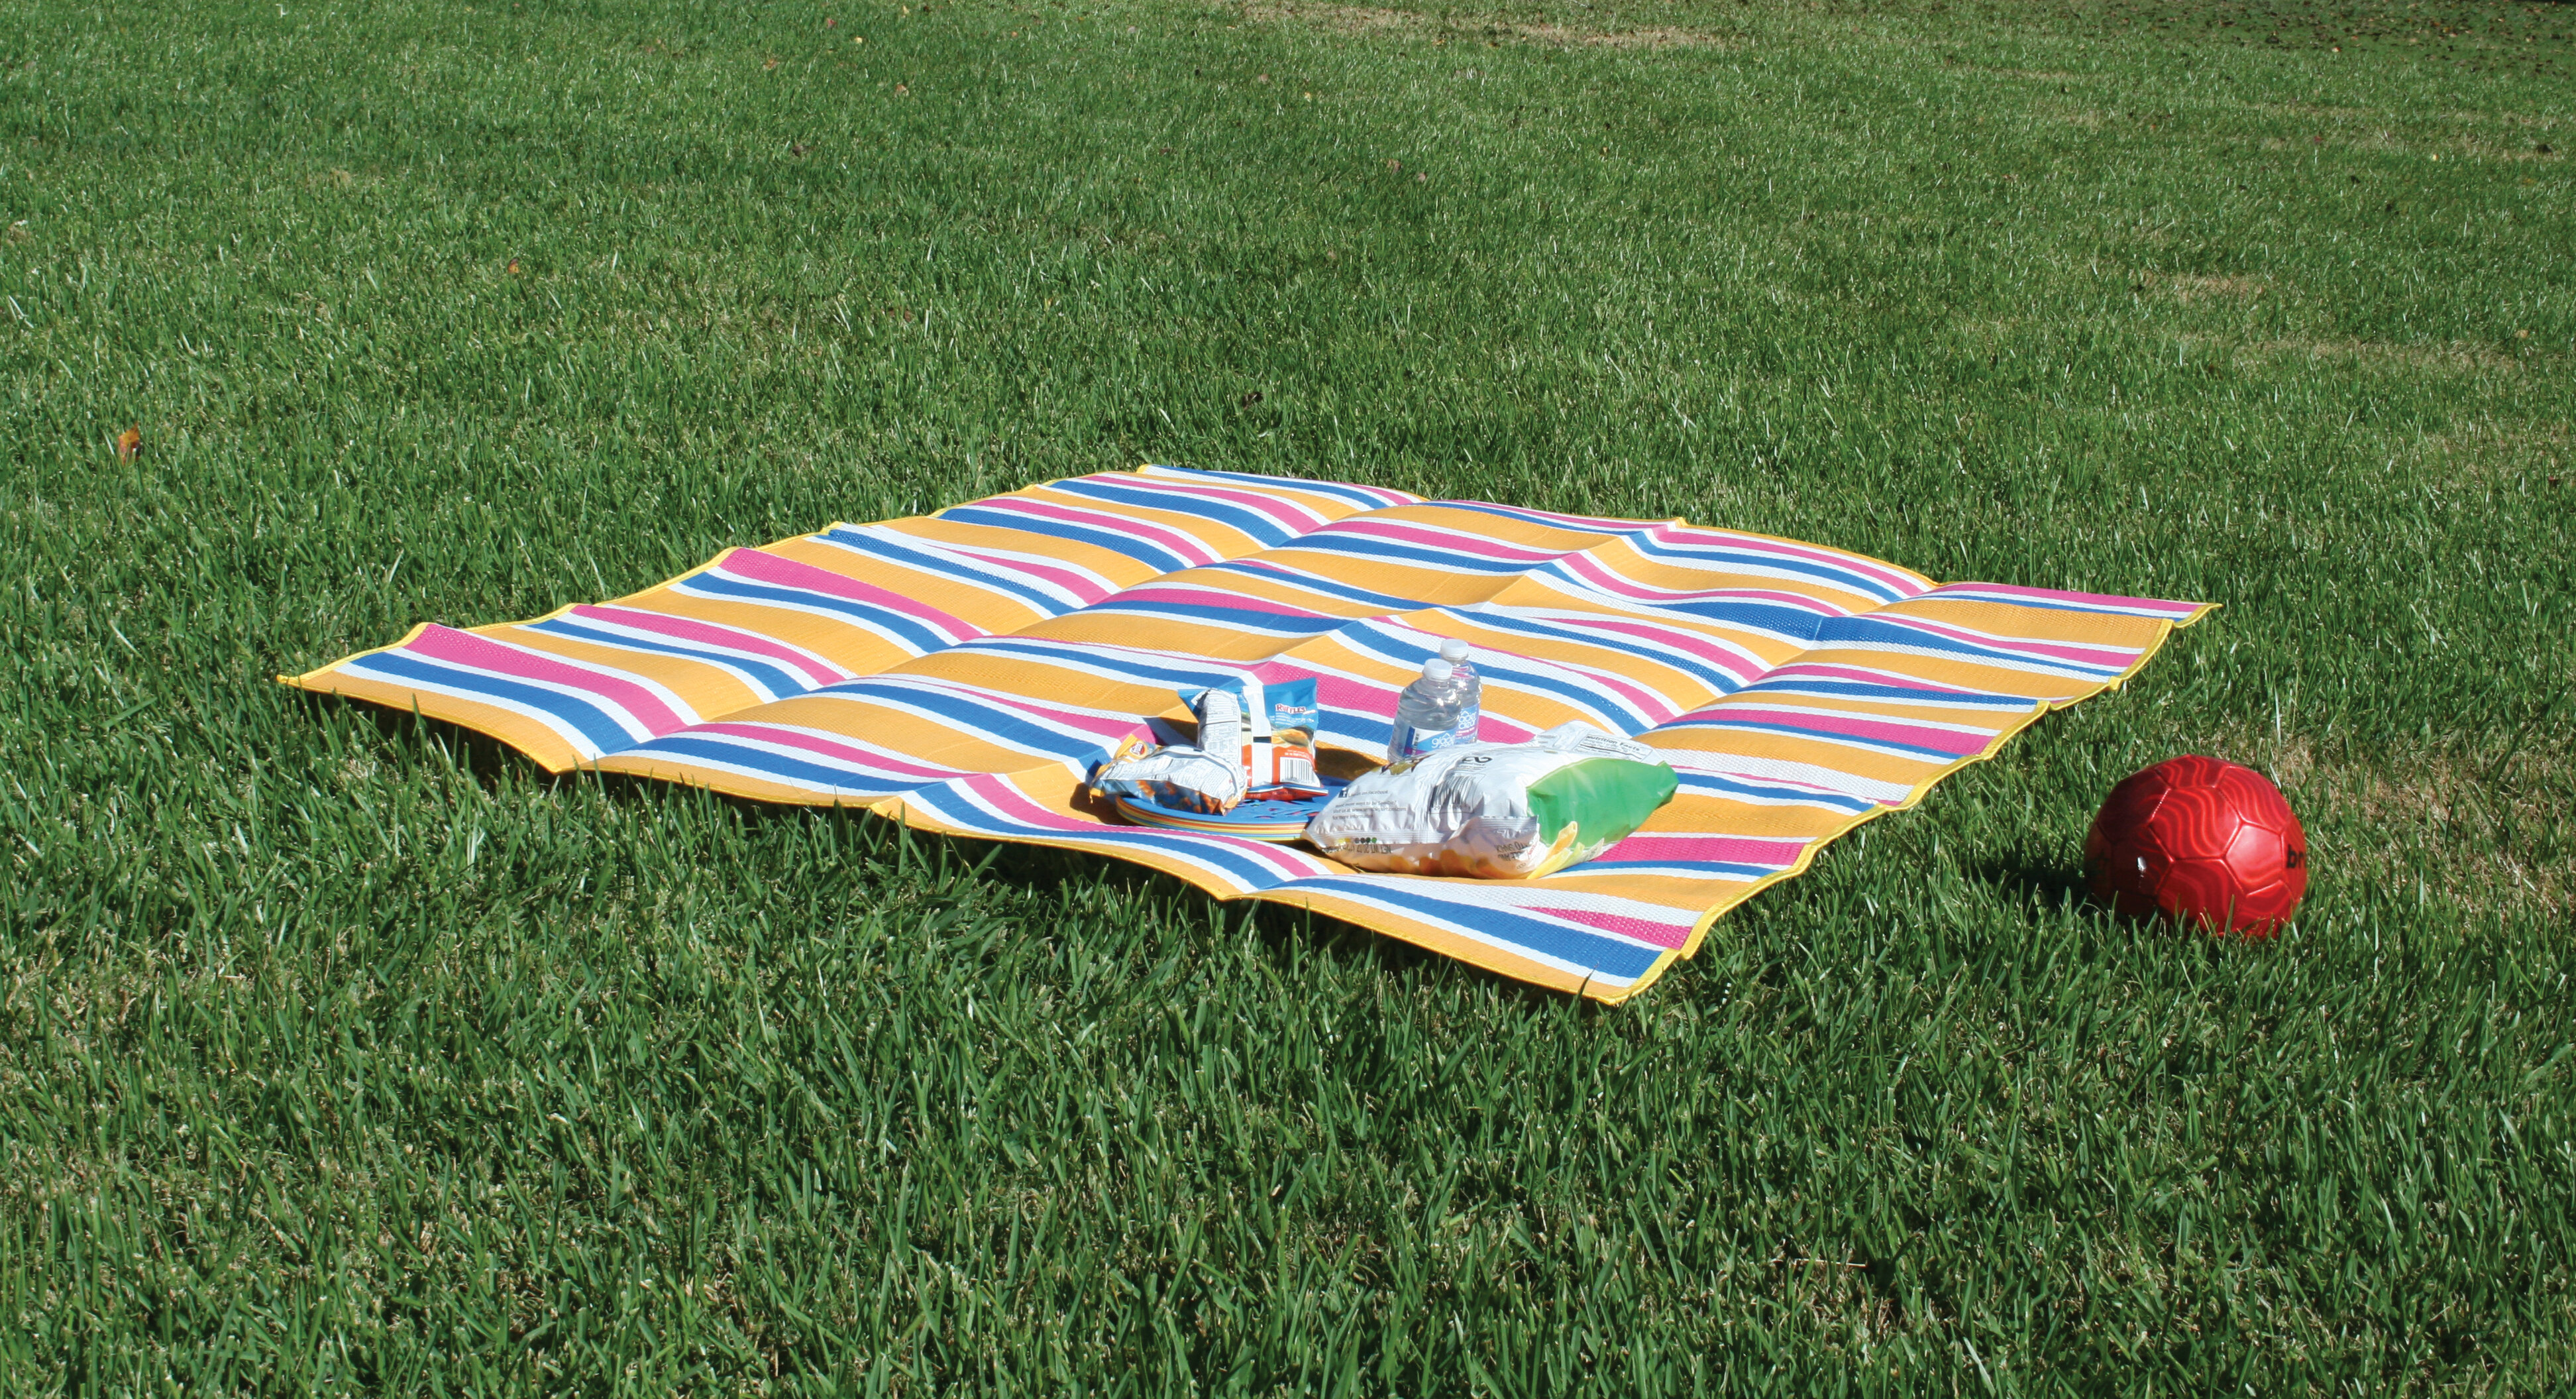 Where To Get Picnic Blanket Cheaper Than Retail Price Buy Clothing Accessories And Lifestyle Products For Women Men